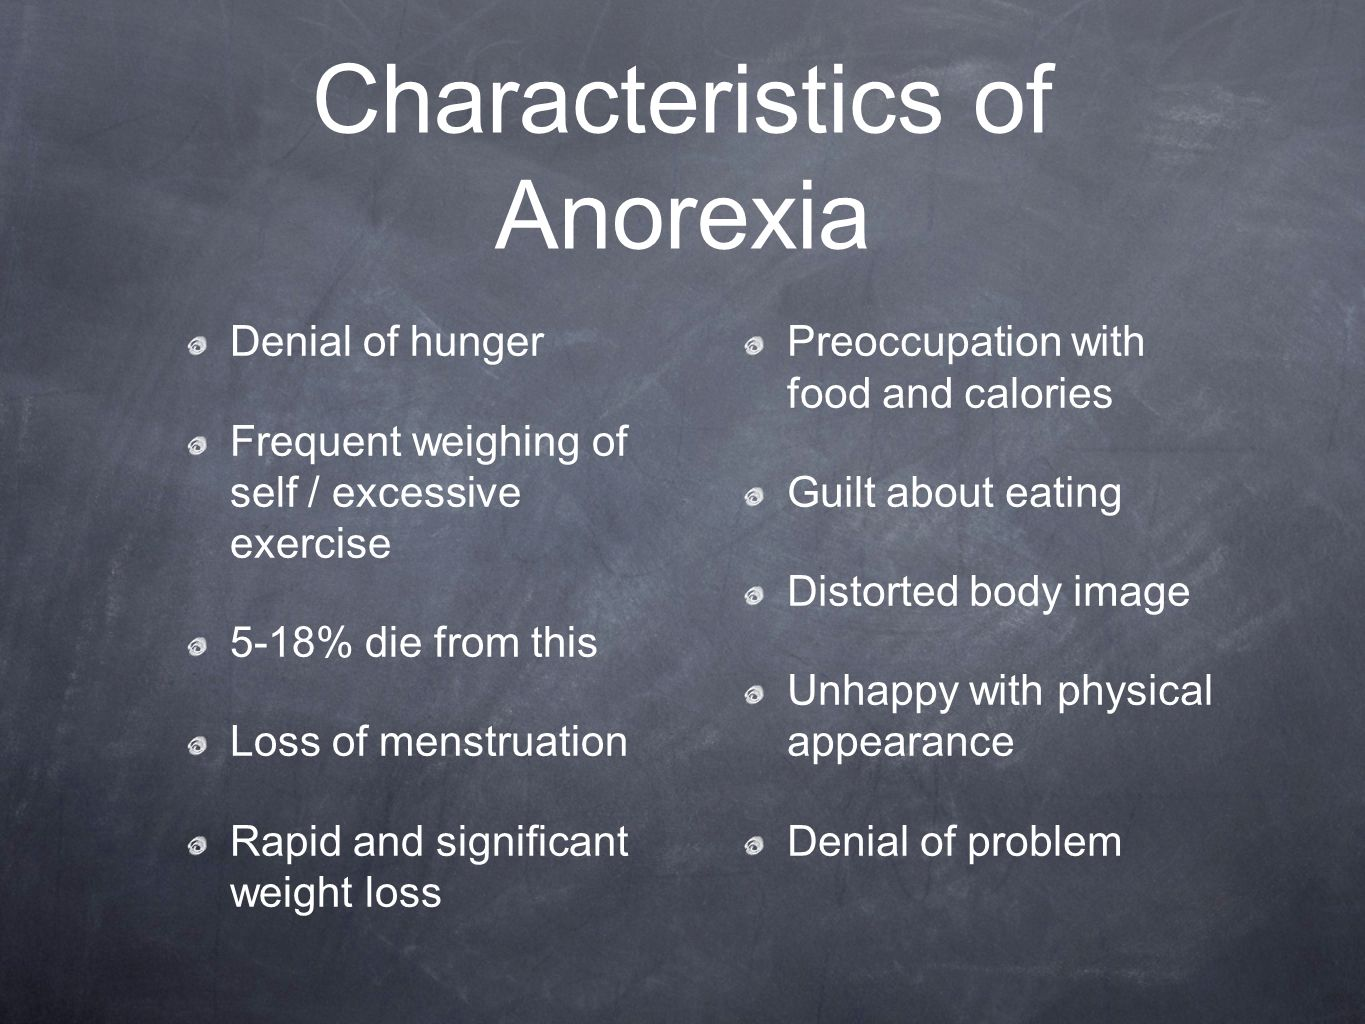 the main characteristics of anorexia Discover the warning signs of binge eating disorder, anorexia and bulimia read about the symptoms and causes of eating disorders as well as treatment options.